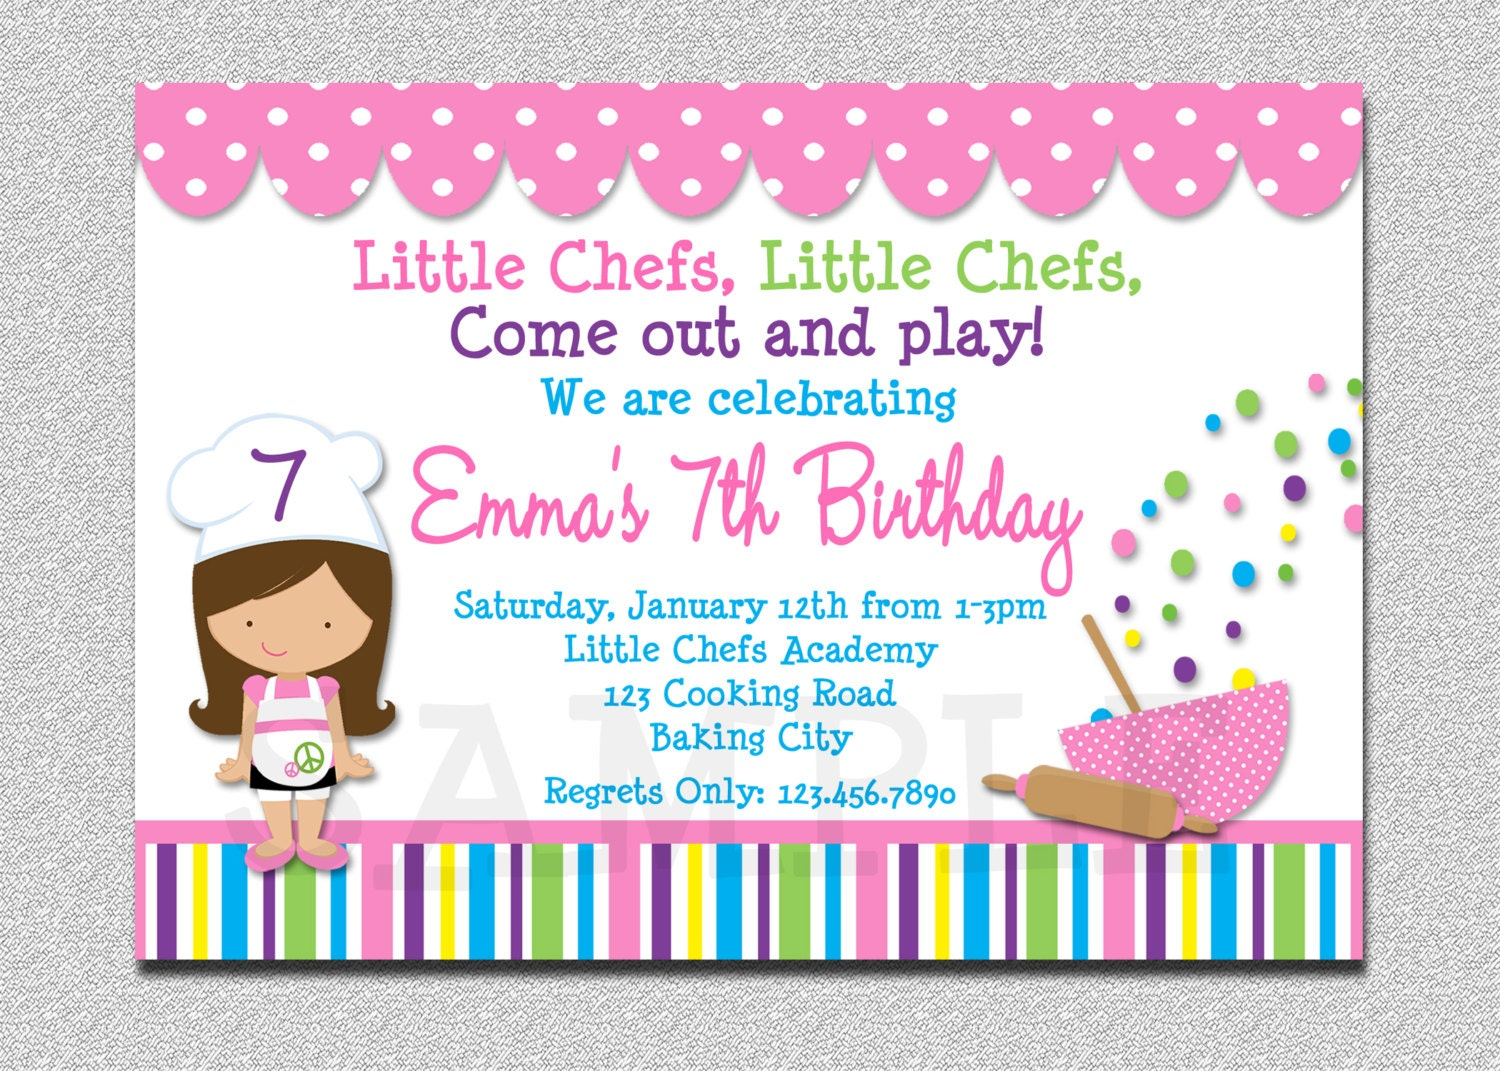 Cooking party invitations images invitation templates free download baking birthday party invitations preppy baking kitchen stopboris Gallery